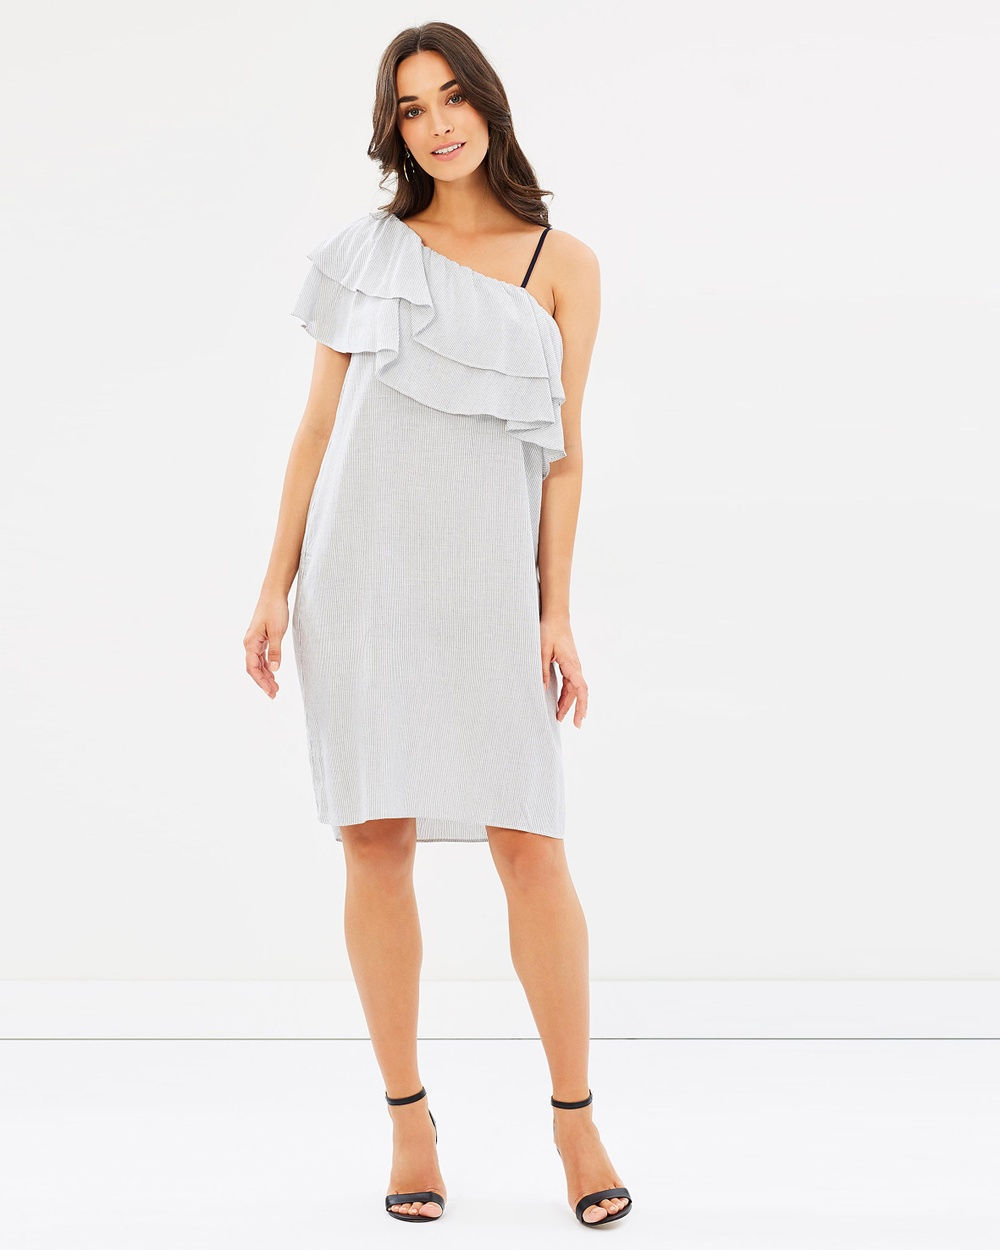 Wite Mini Stripe Ruffle Dress Dresses Stripe Mini Stripe Ruffle Dress